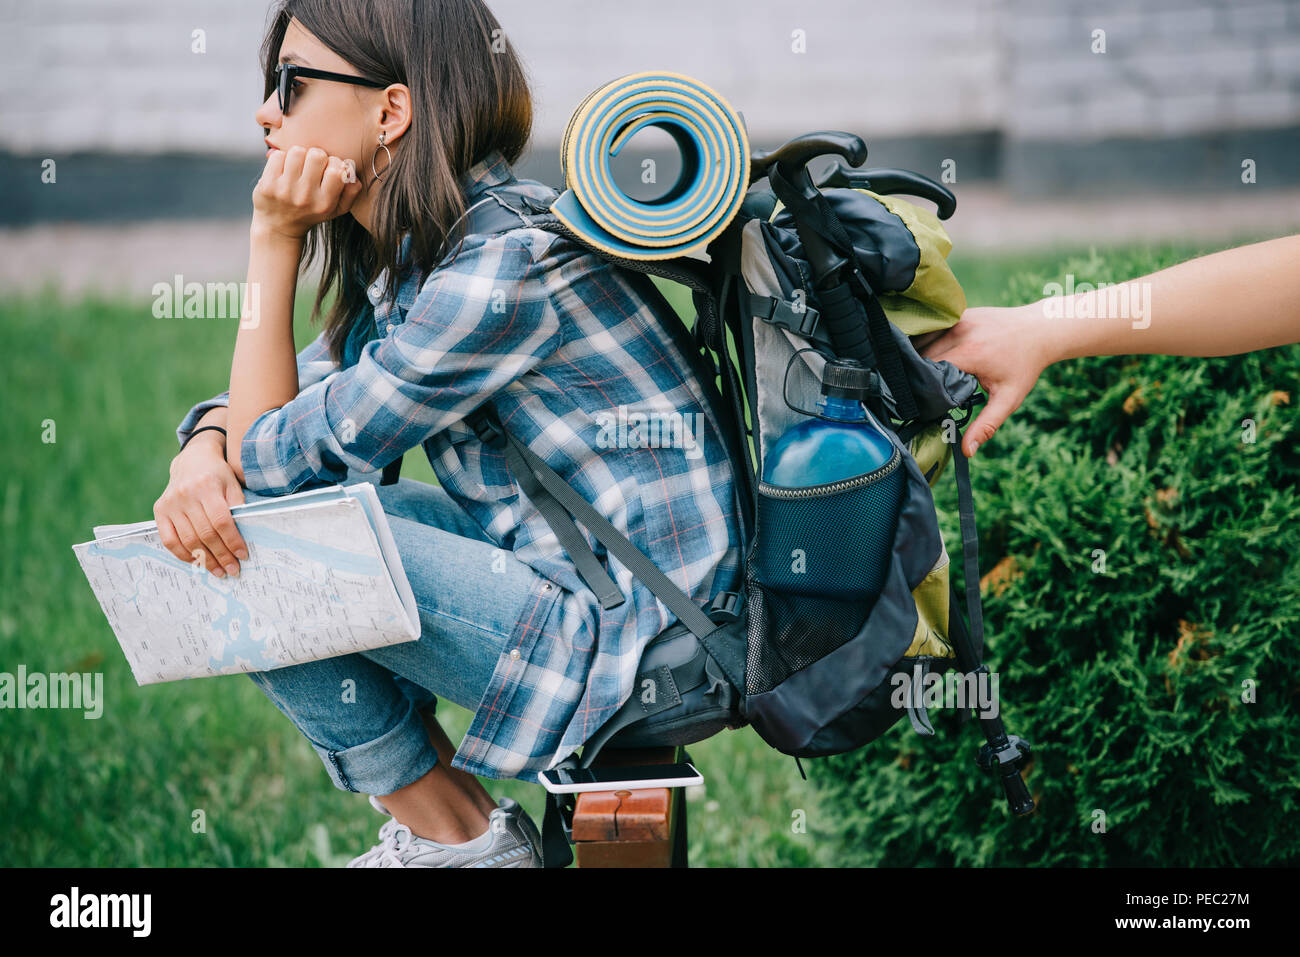 side view of girl traveler holding map and looking away while someone stealing from backpack - Stock Image